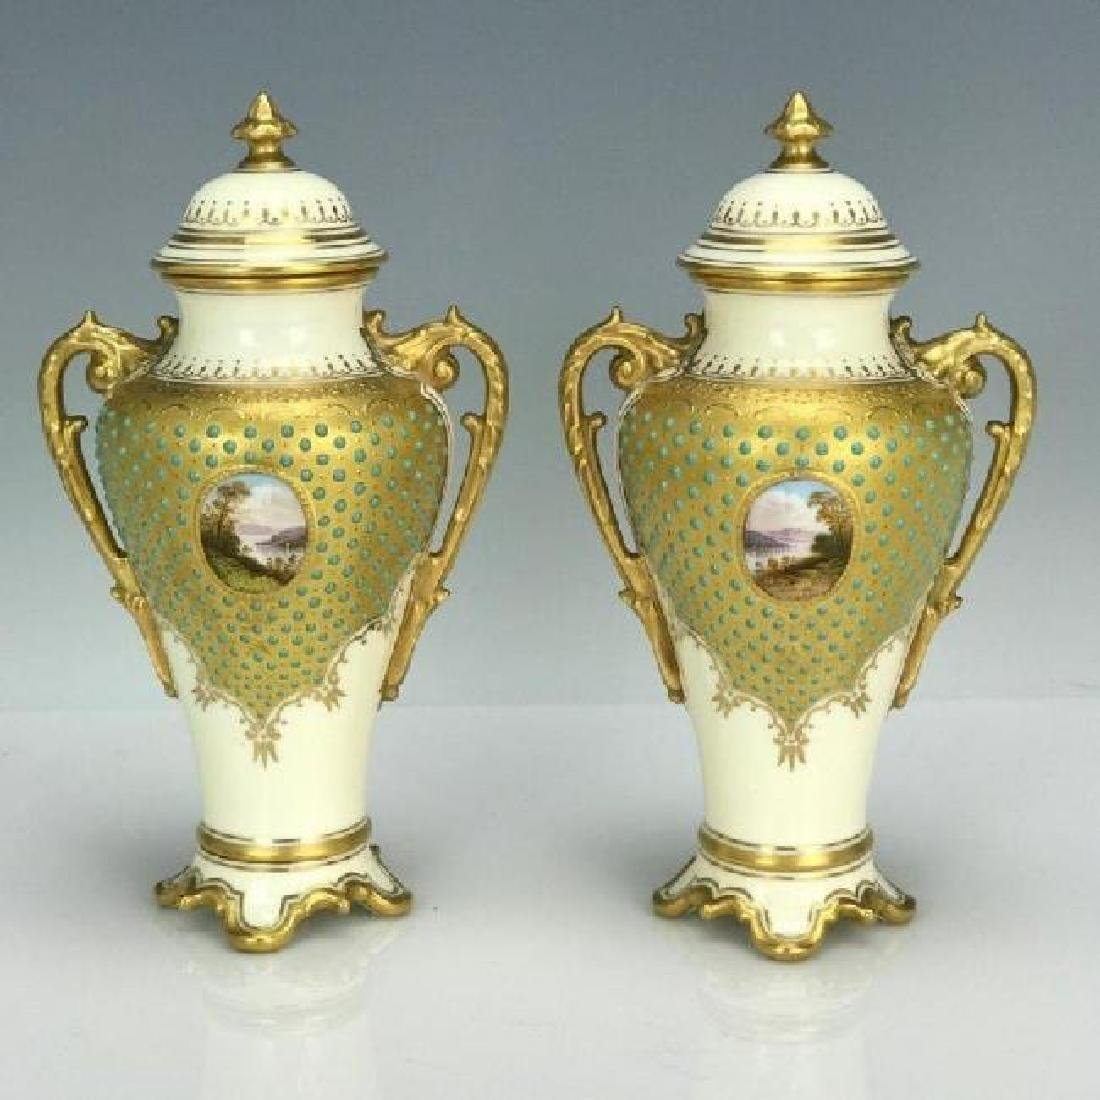 A PAIR OF JEWELED COALPORT VASES AND COVERS